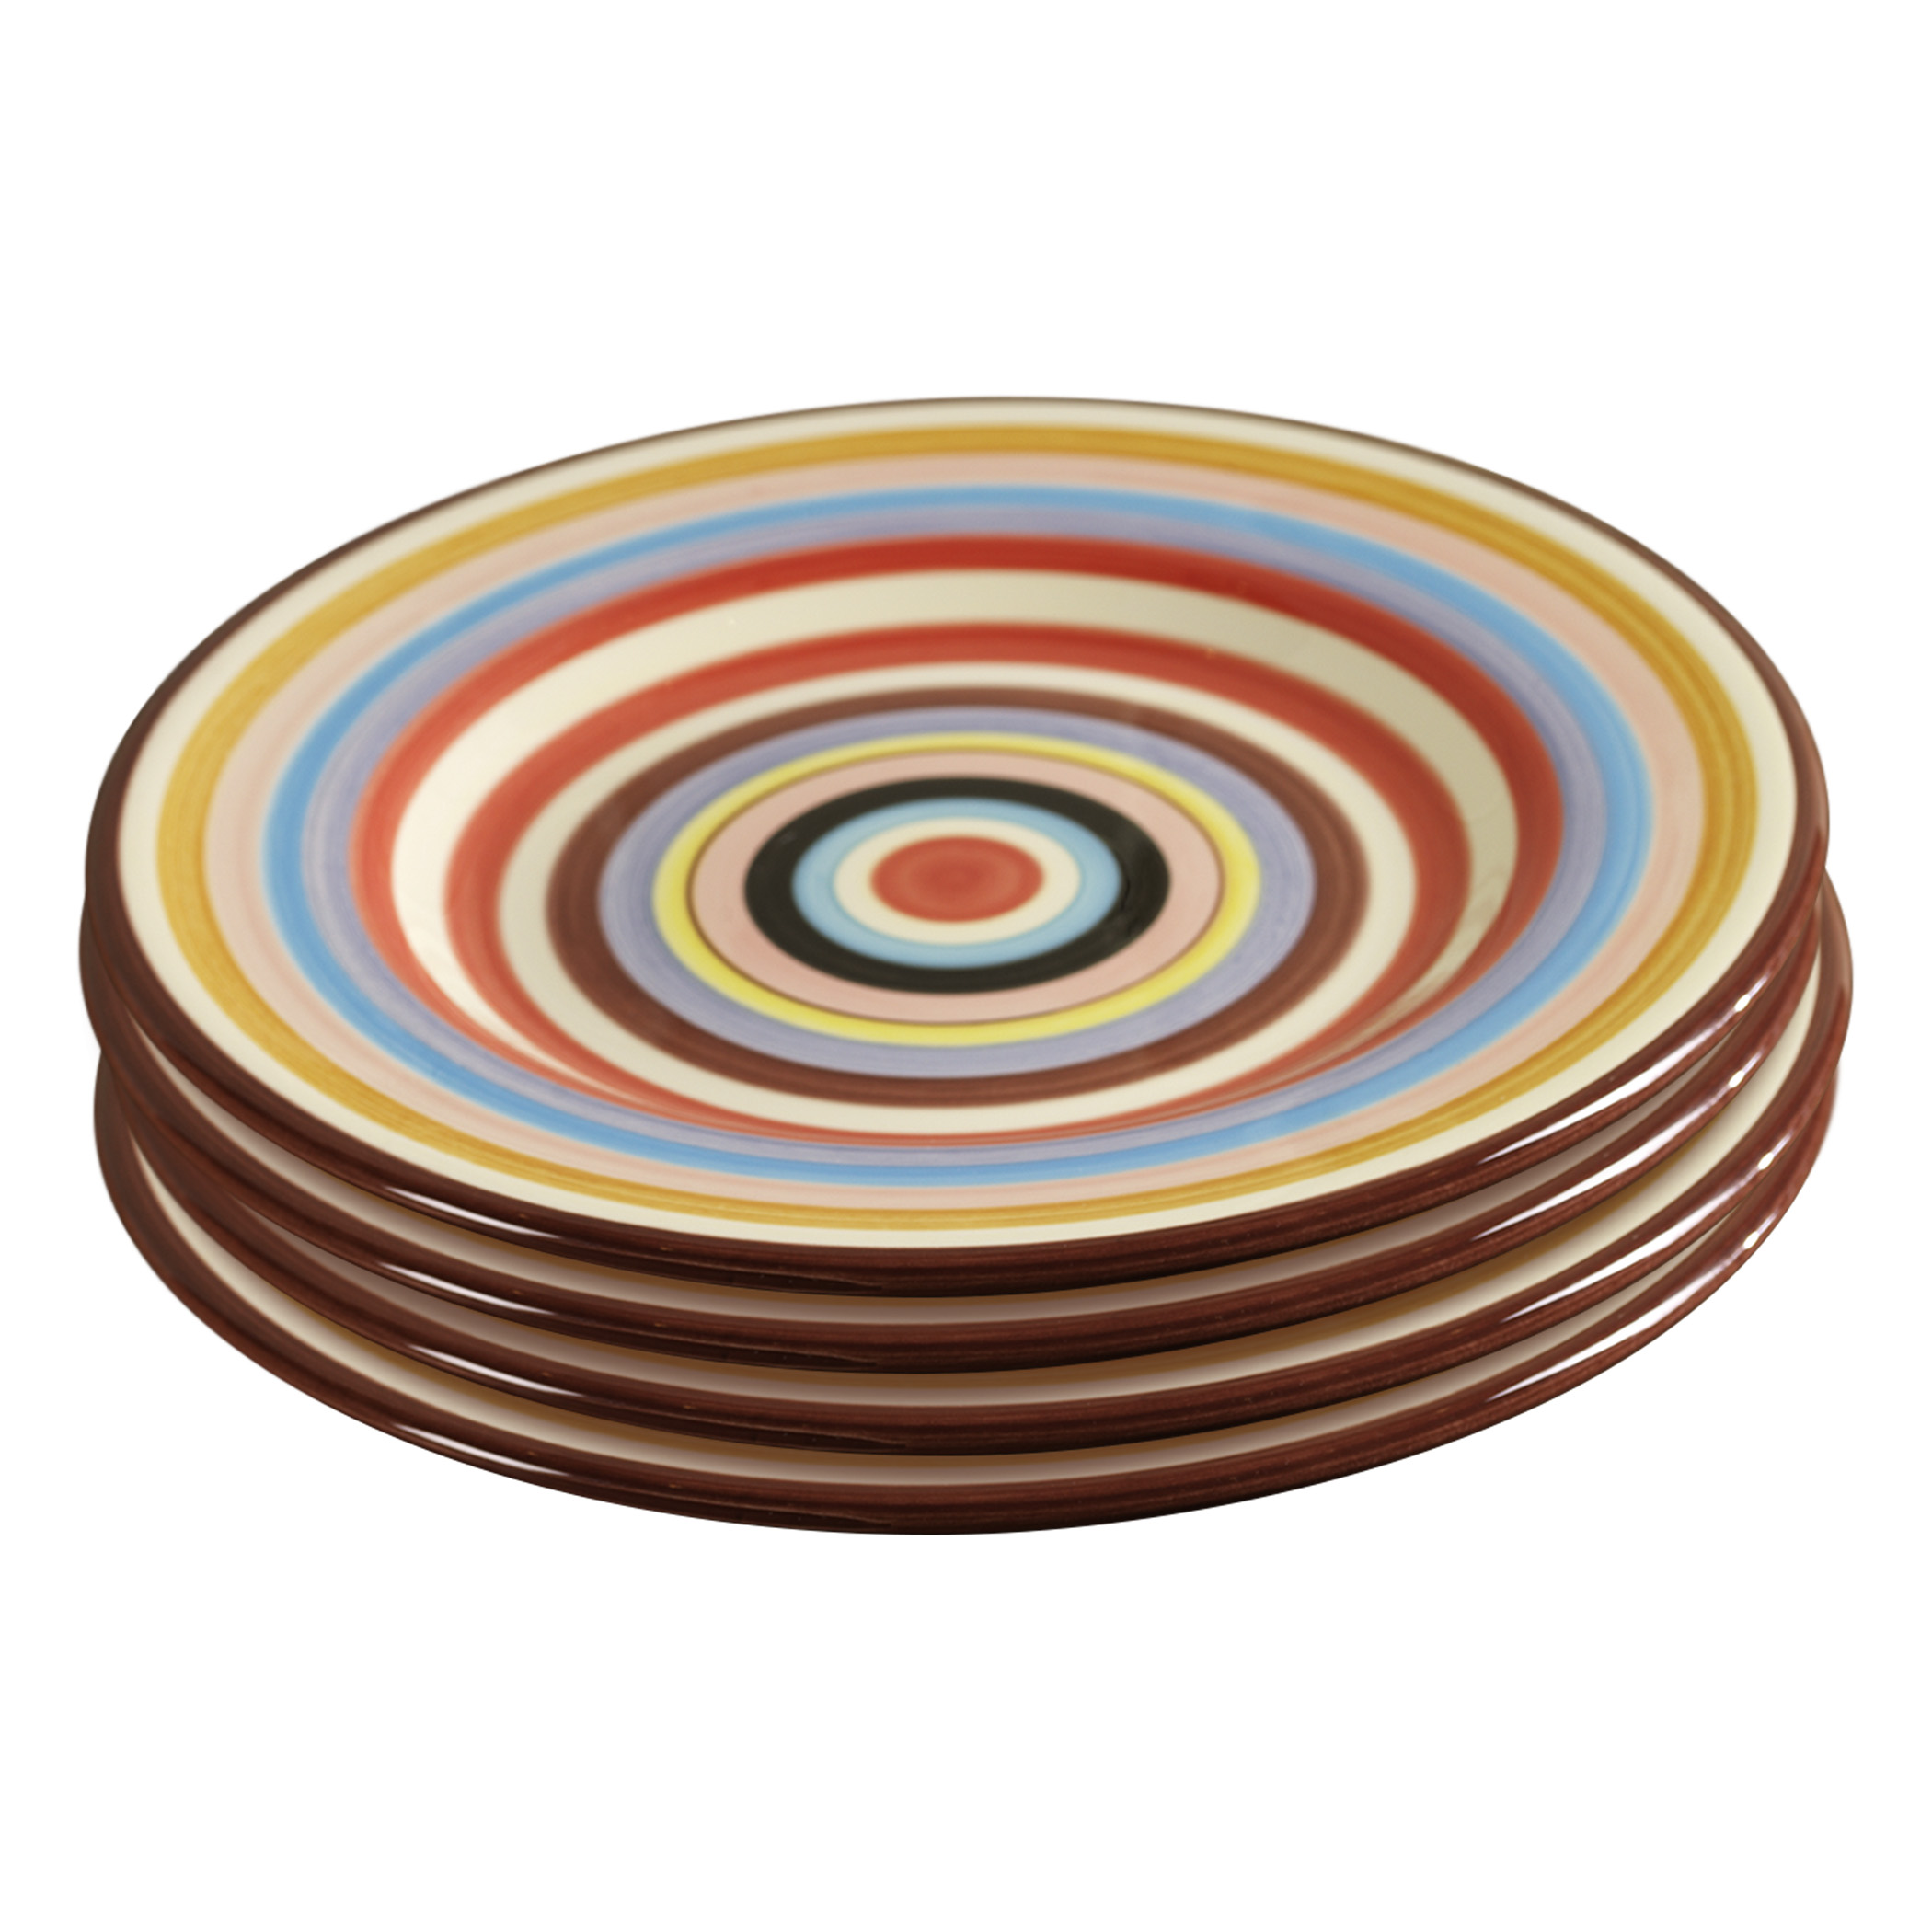 TMS-M6801-EC-Sedona Set of Four 11.5 Inch Ceramic Dinner Plates by  sc 1 st  Tabletops Unlimited & Sedona Set of Four 11.5 Inch Ceramic Dinner Plates by Tabletops ...